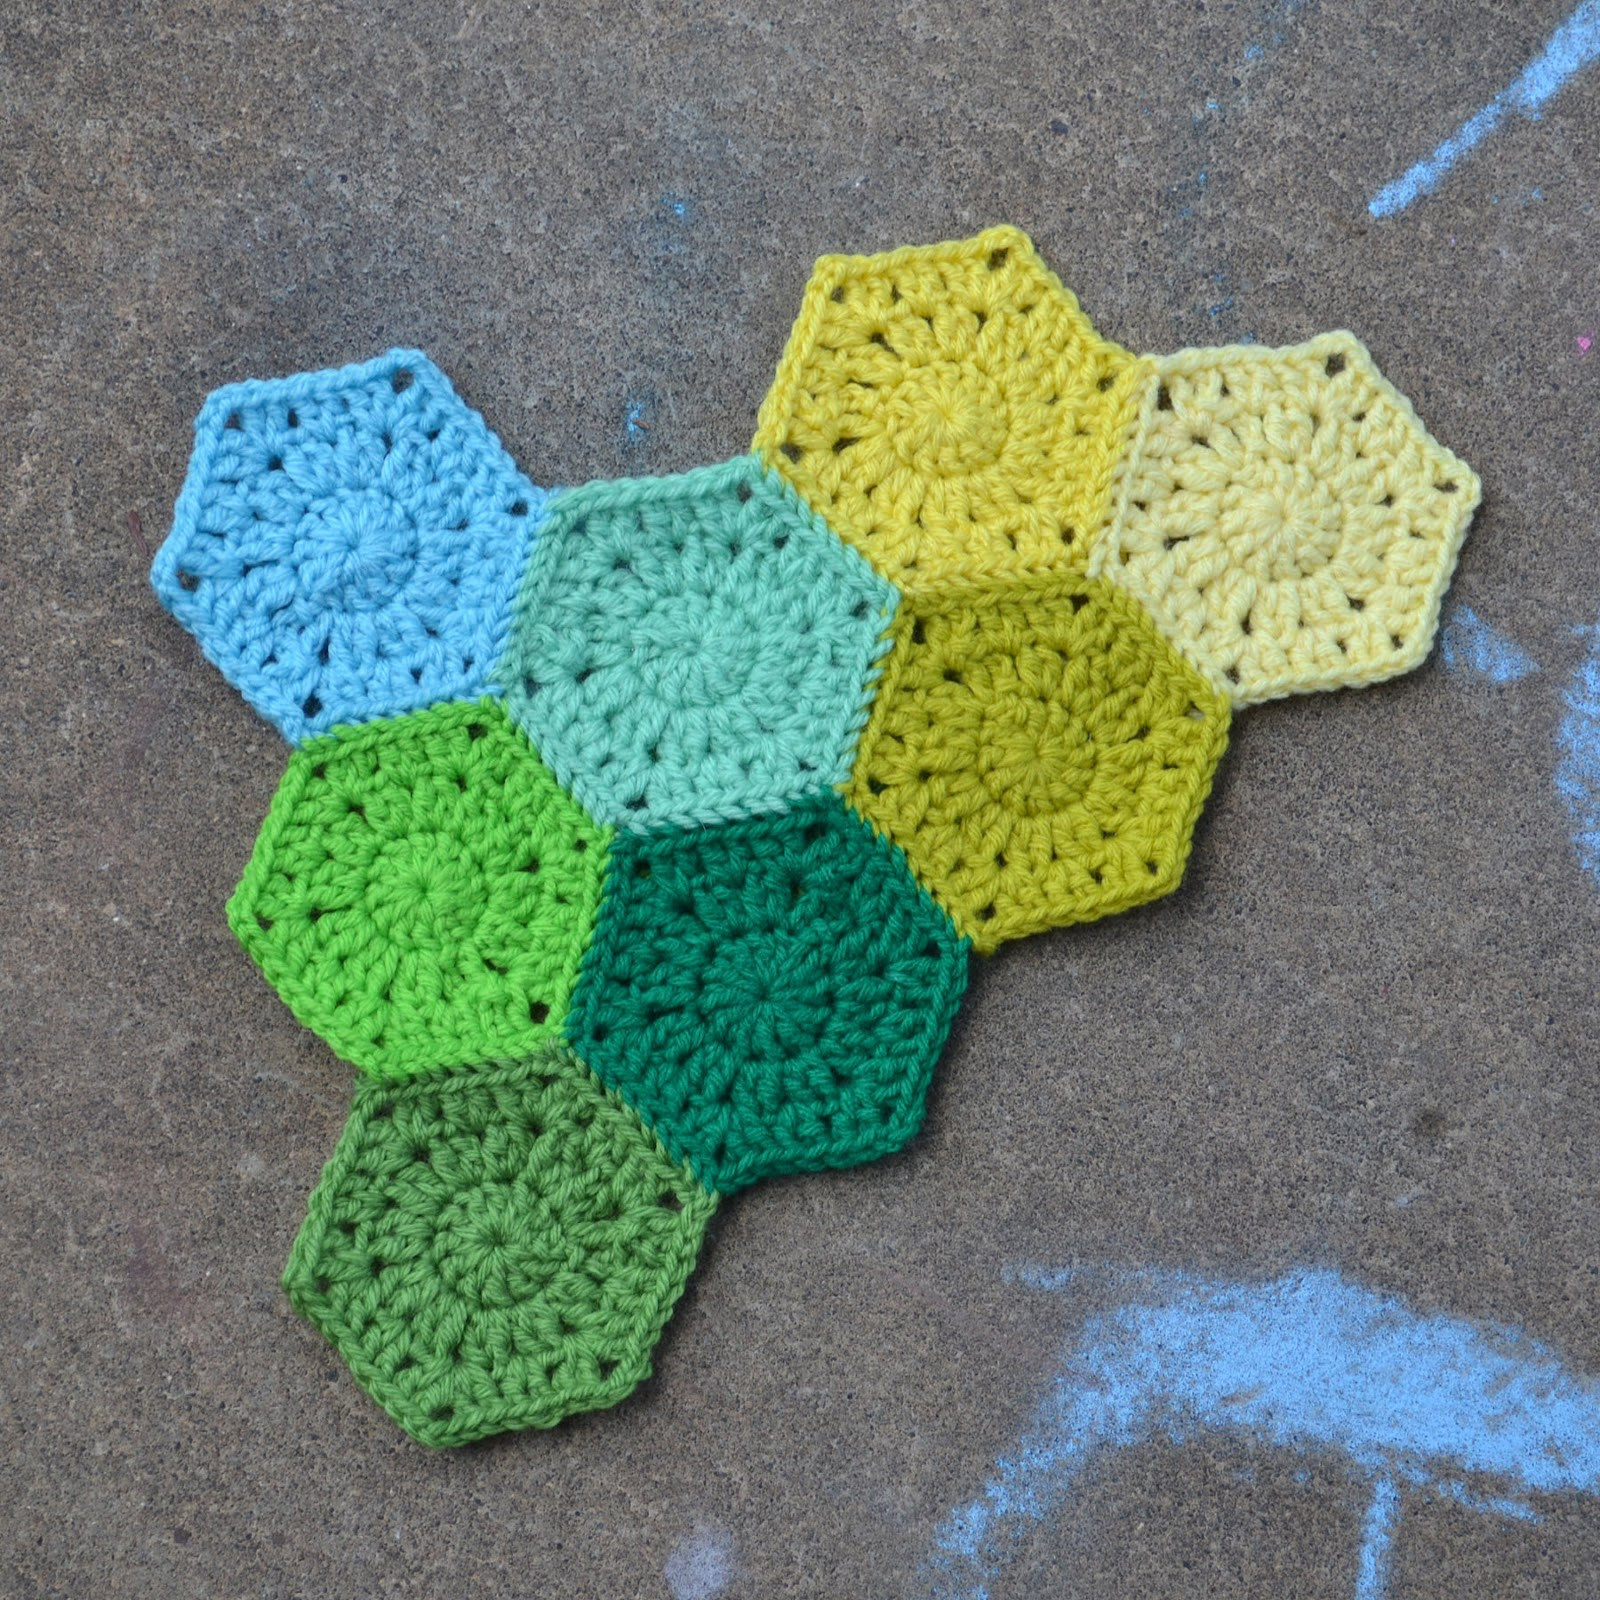 Inspirational Crochet In Color Hexagon Pattern Easy Crochet Projects Of Awesome 49 Pics Easy Crochet Projects